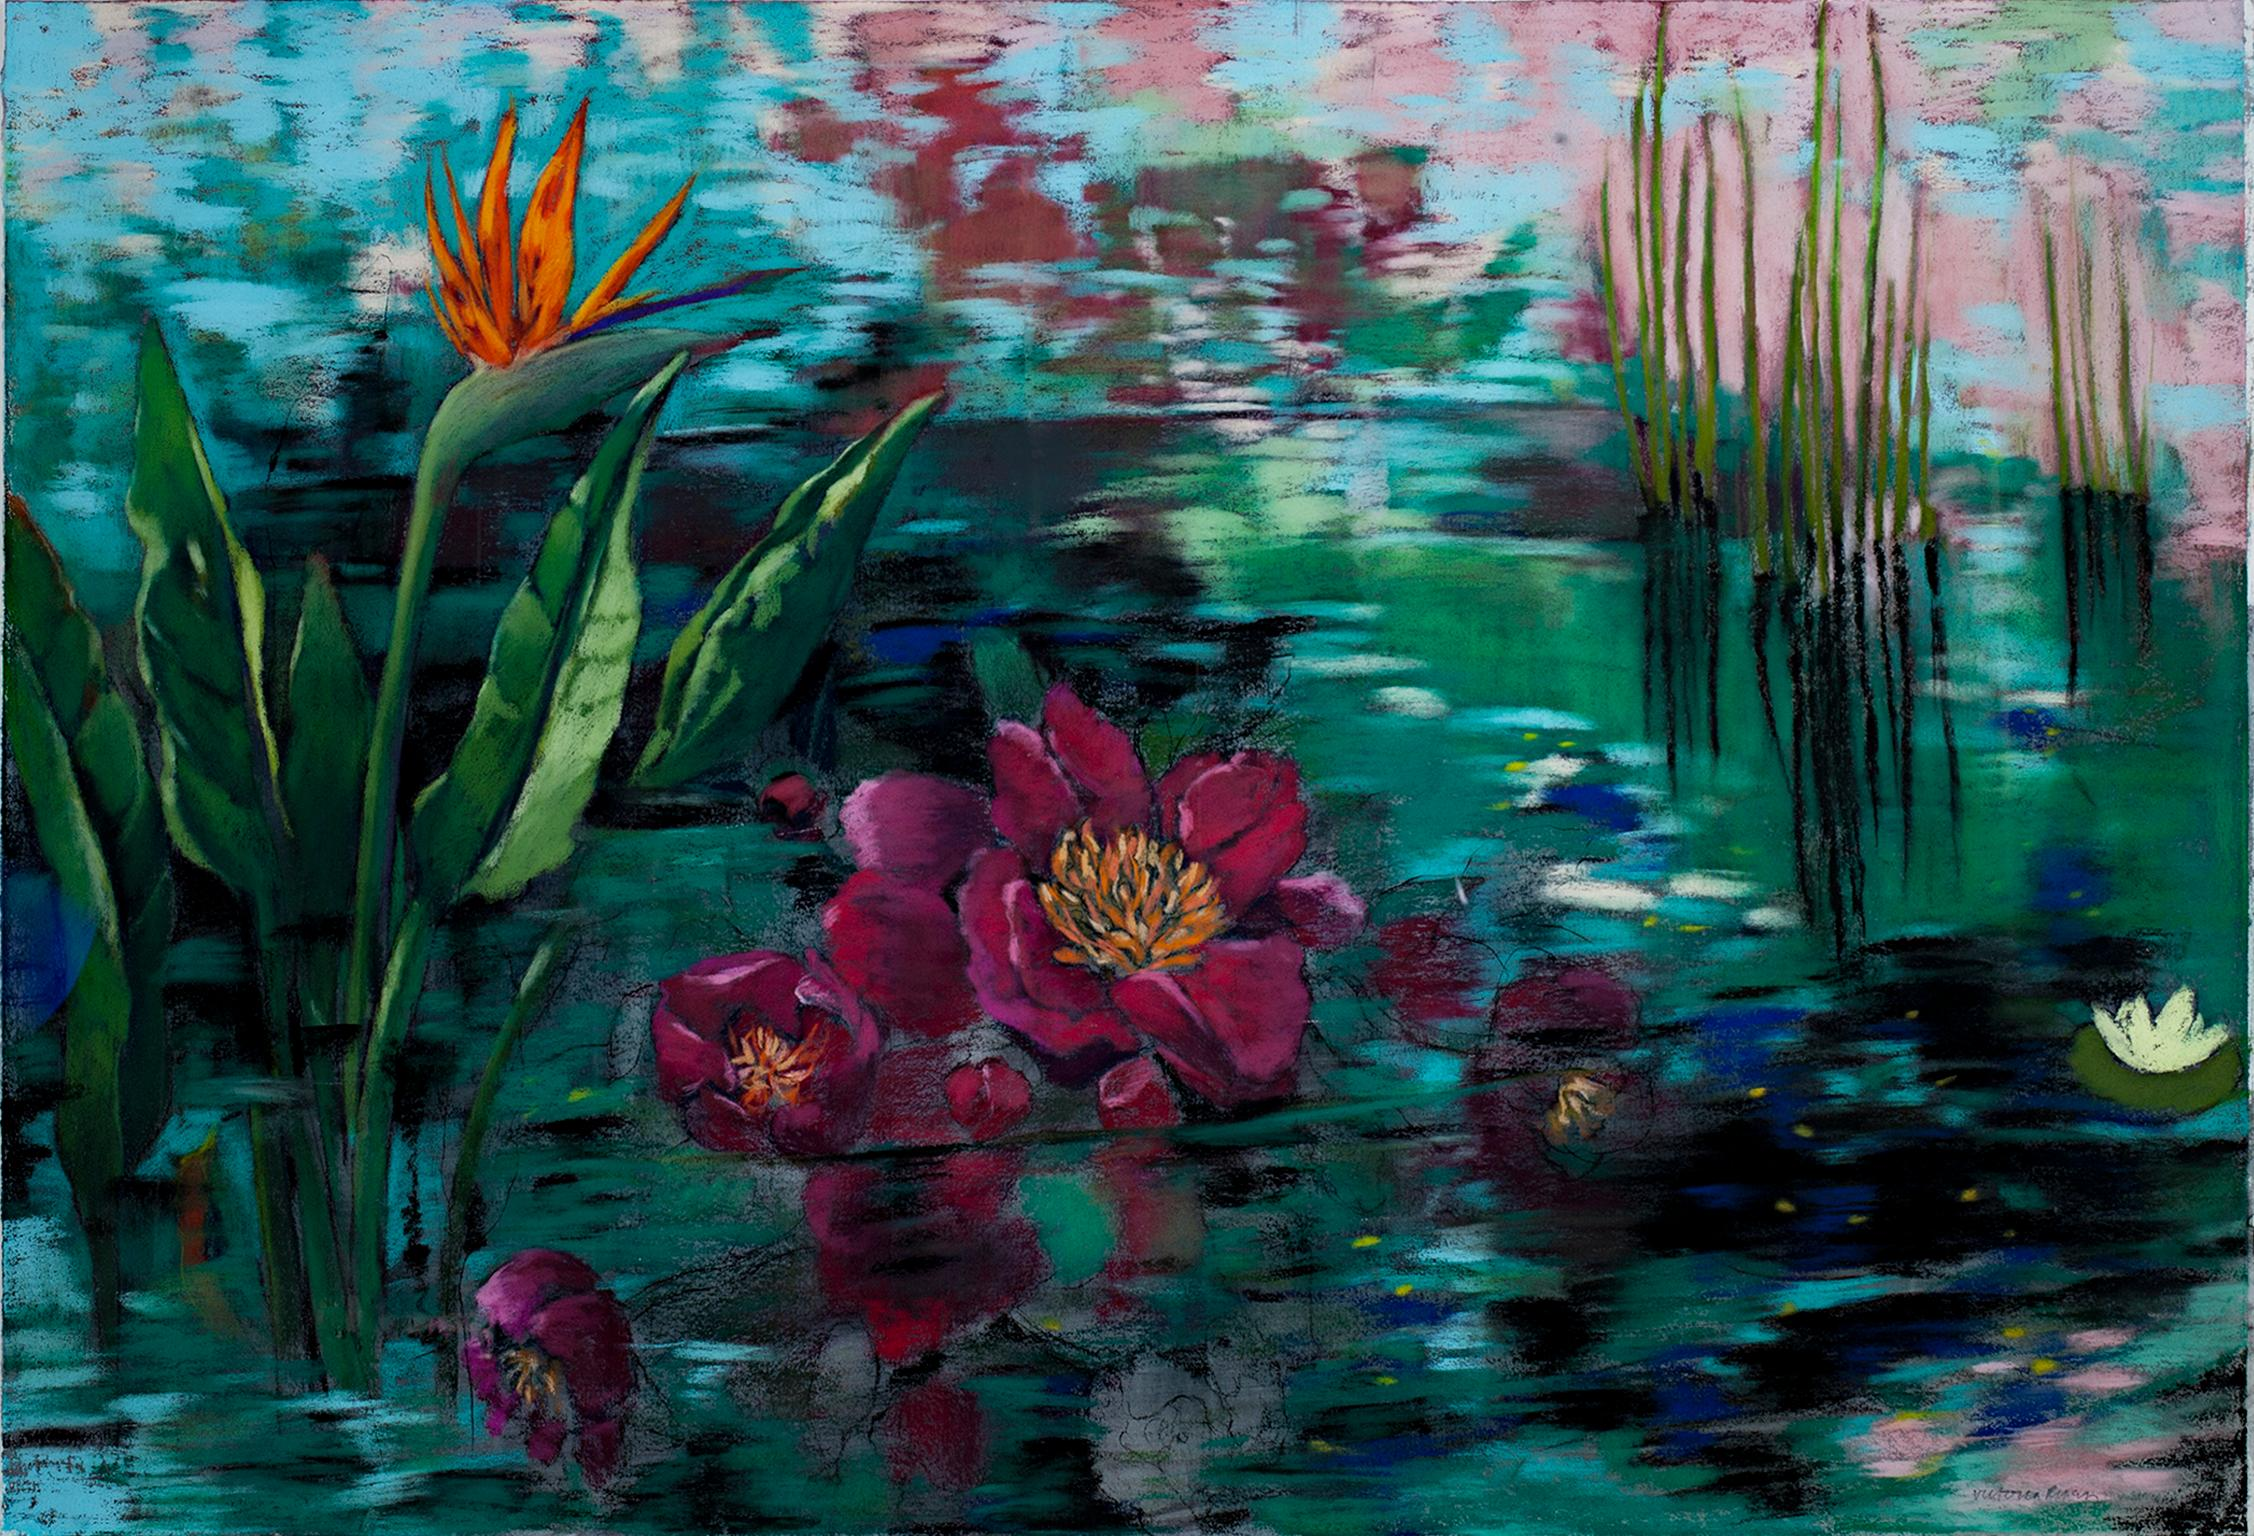 """""""Pond Dream #3,"""" Water Flora Pastel and Gouache on Paper by Victoria Ryan"""